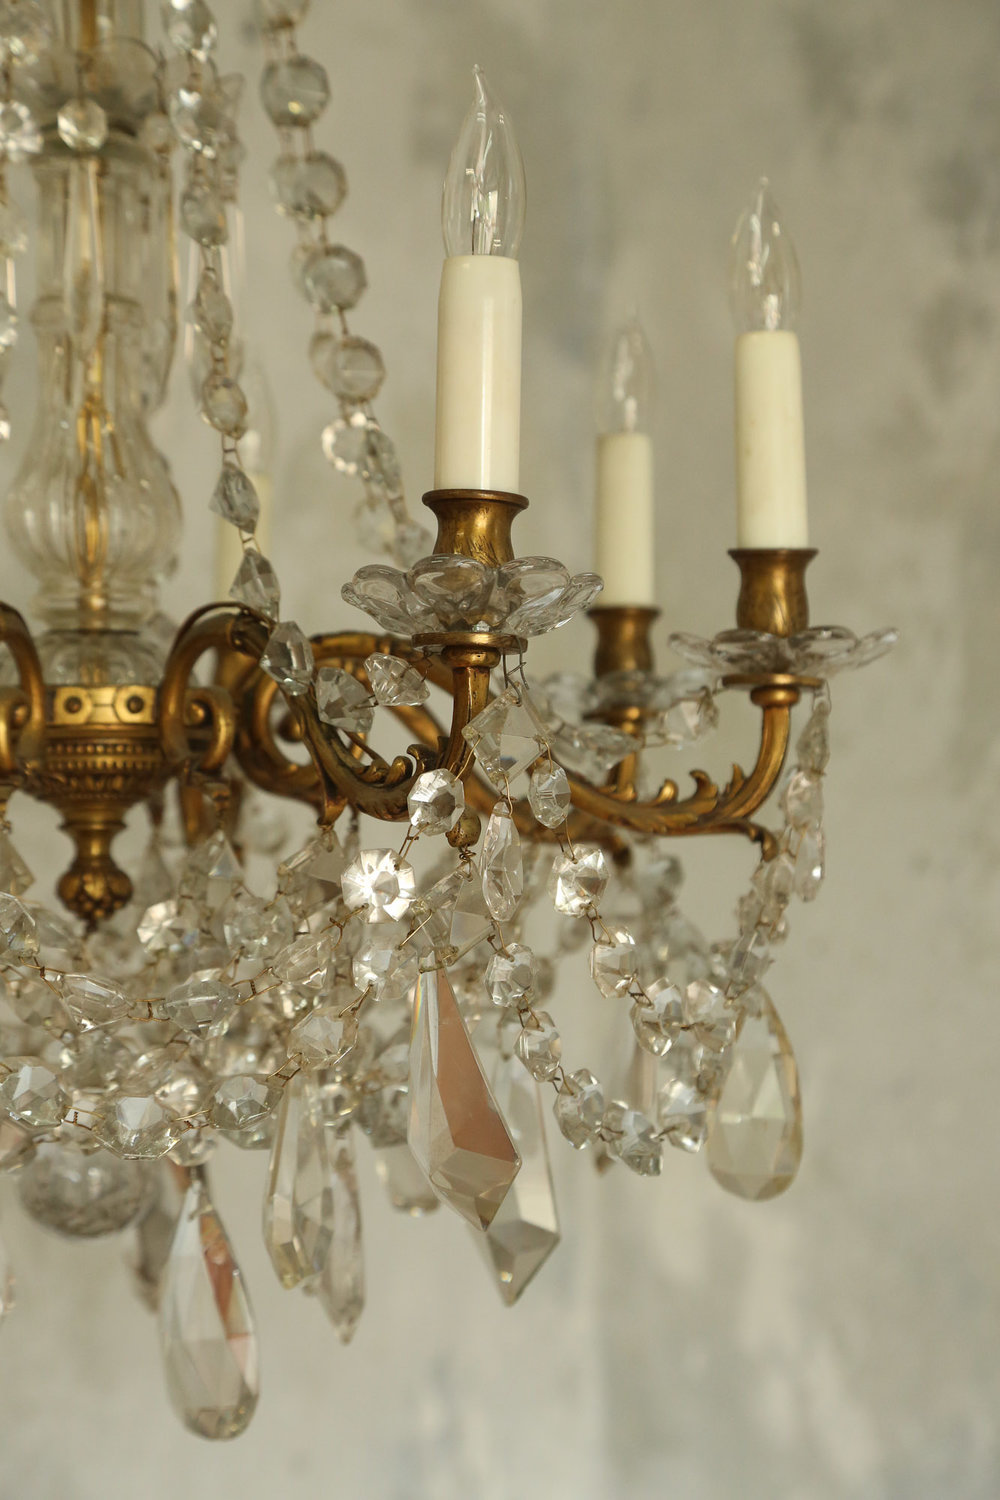 Antique chandelier early 1900's France.jpg